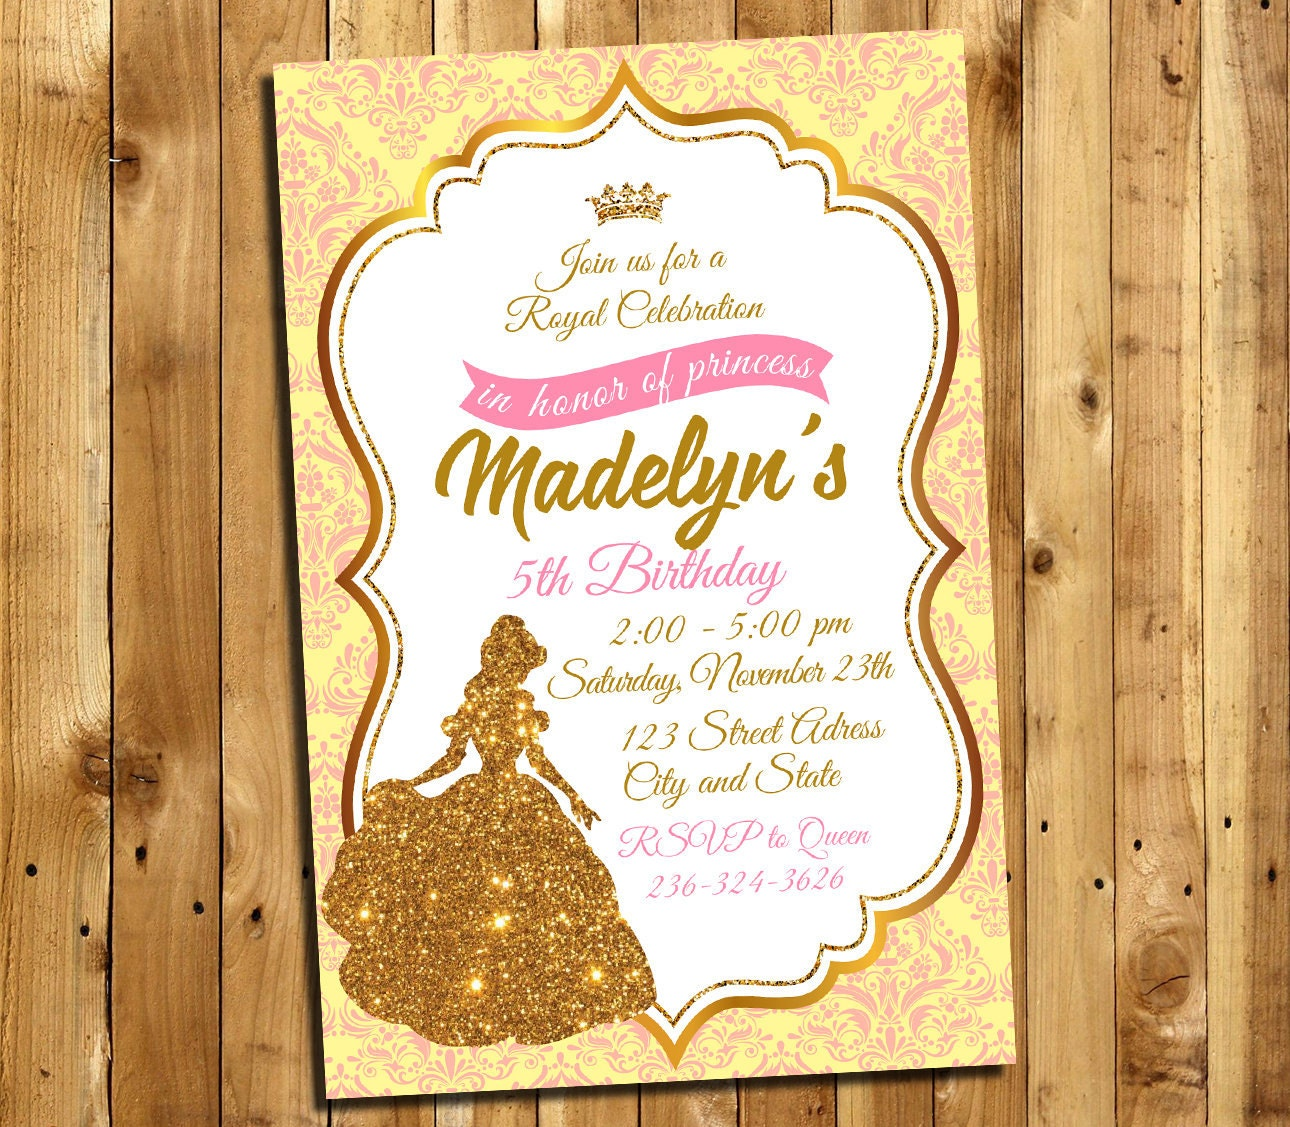 Beauty and the beast invitation beauty and the beast for Beauty and the beast wedding invitation template free